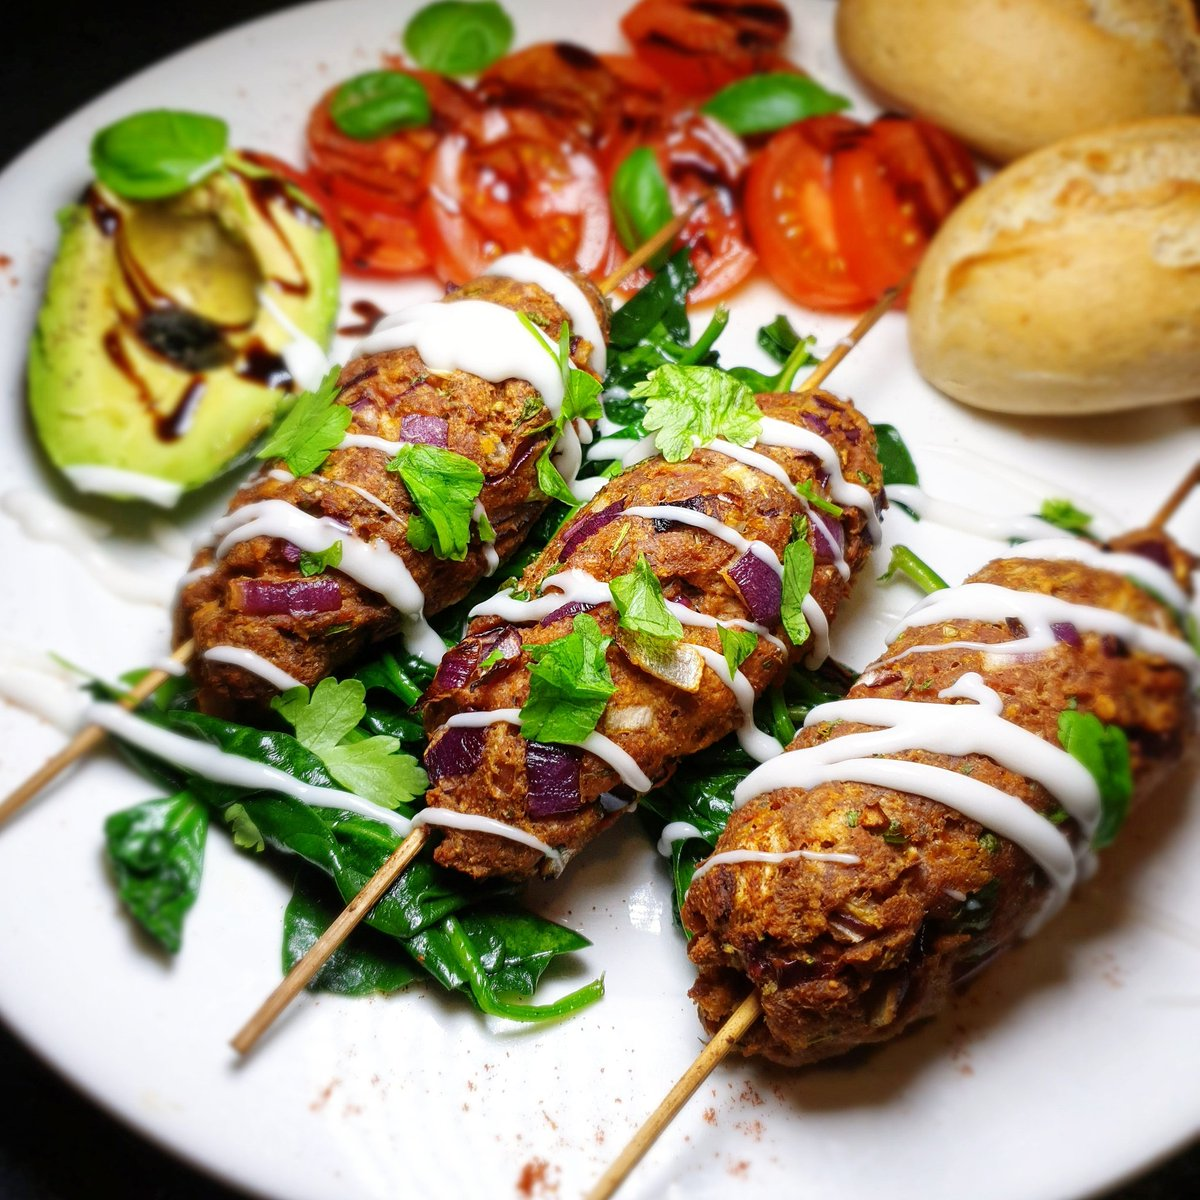 Tangy Kebabs with wilted spinach & tomato salad.  . I love making these & use different spices/herbs each time. Made with @MeatlessFarm (Sainsburys) mince, onion, garlic, breadcrumbs, pink salt, cracked black pepper, garam masala, turmeric, cumin & fresh coriander. #vegan